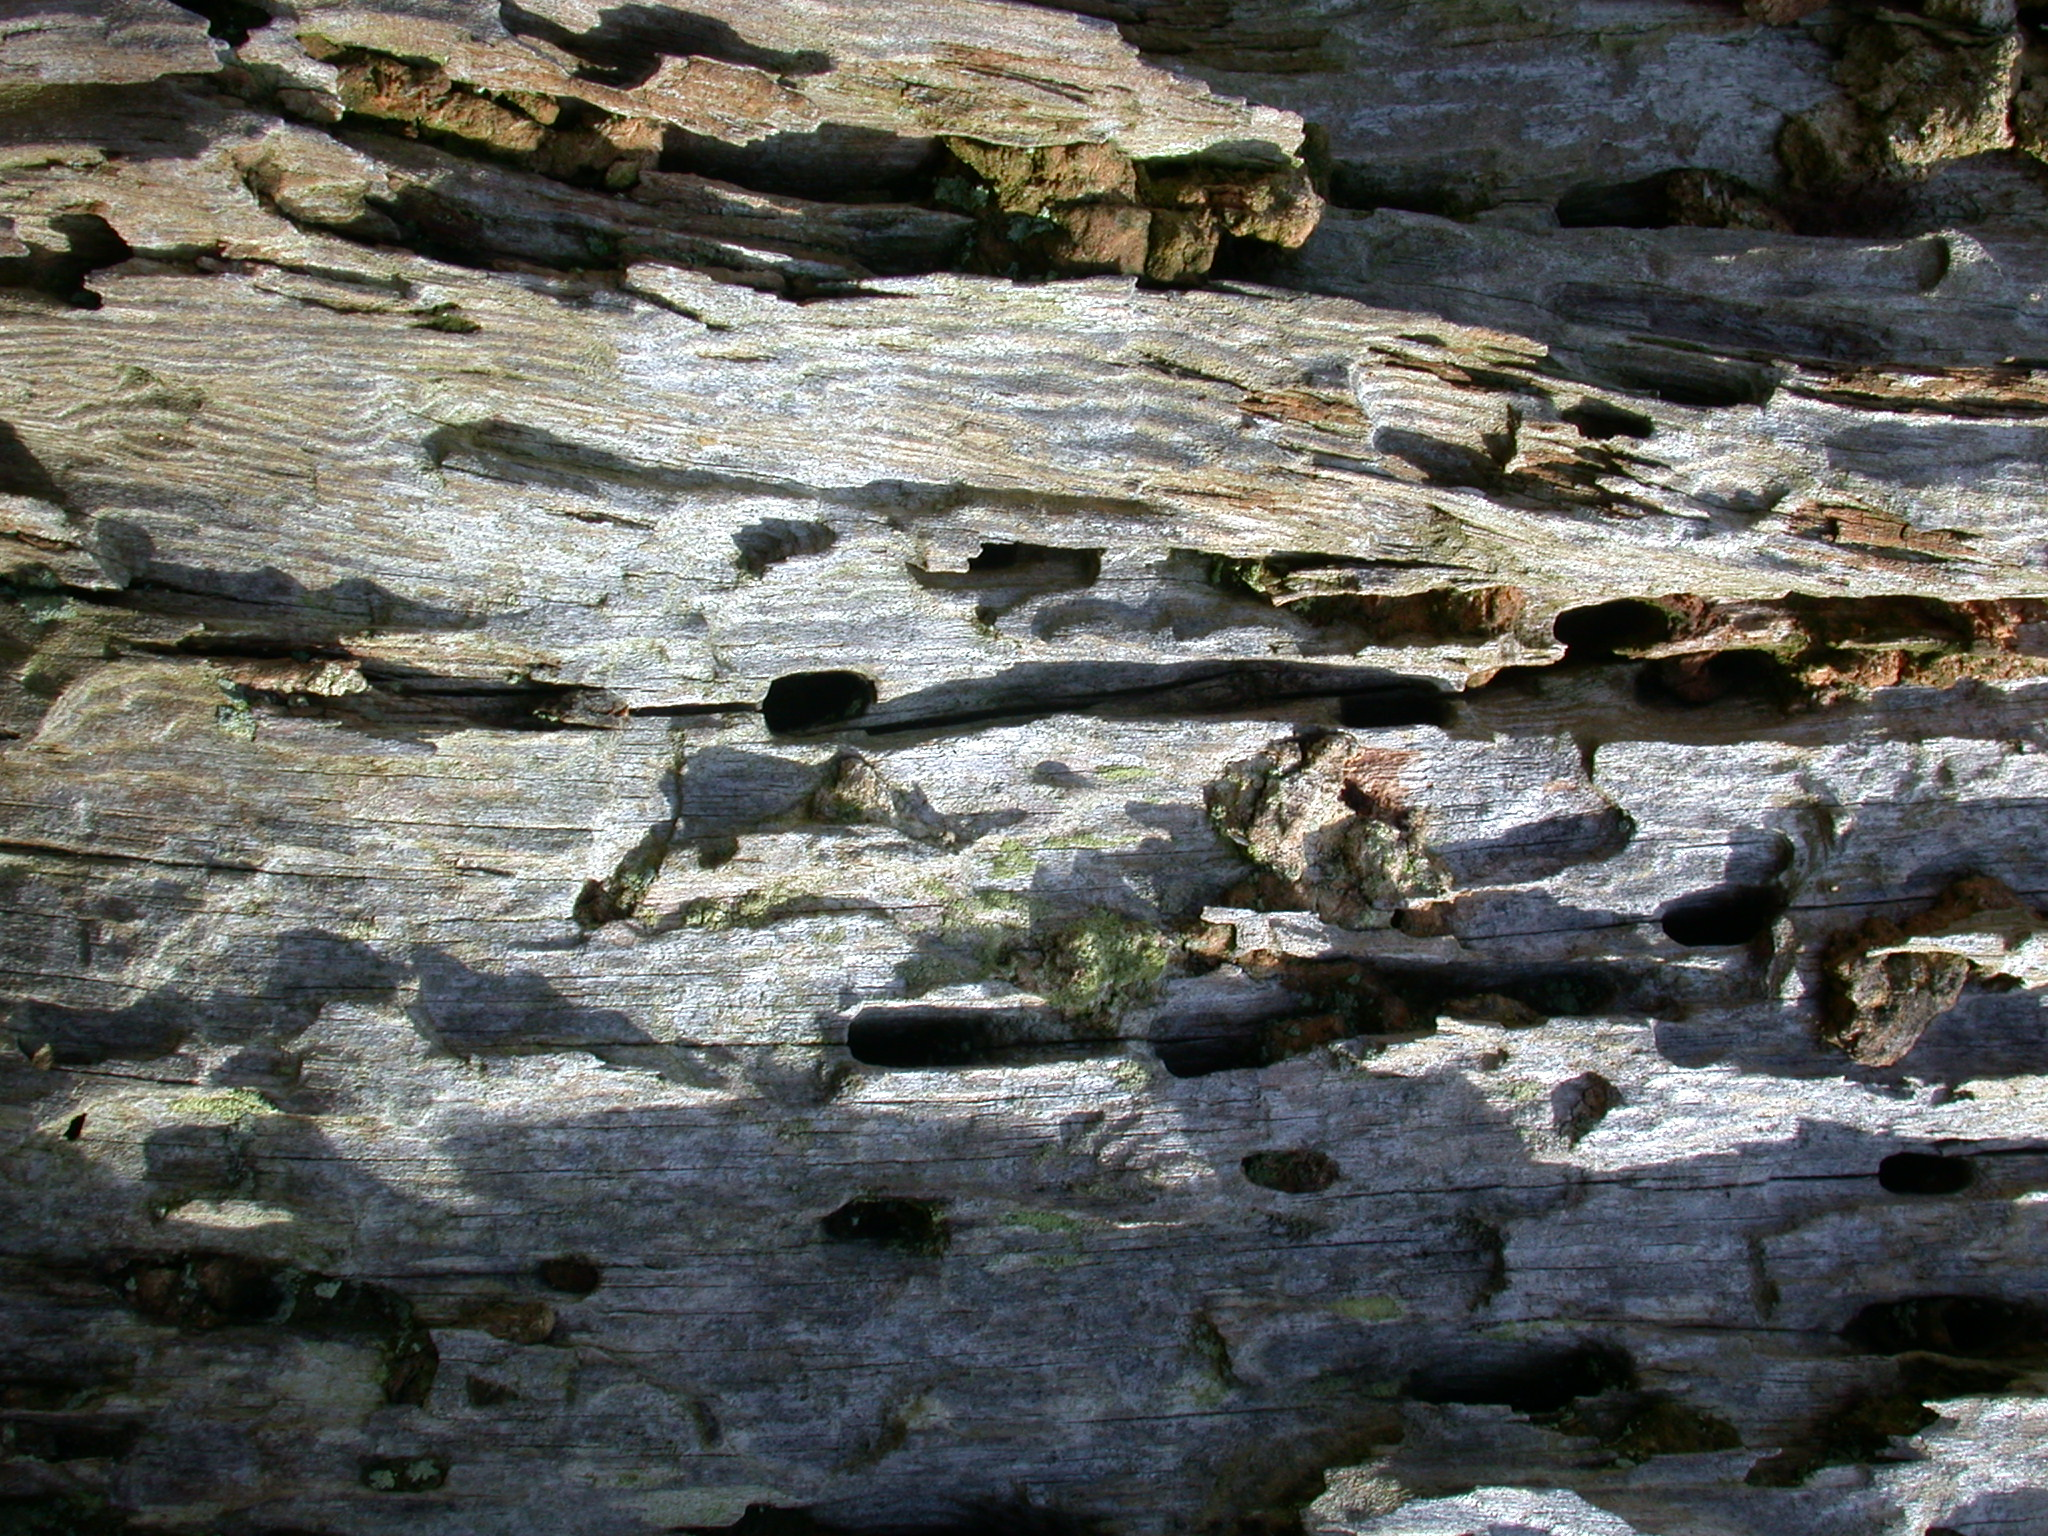 crag craggy rocky rocks tree old very worn out